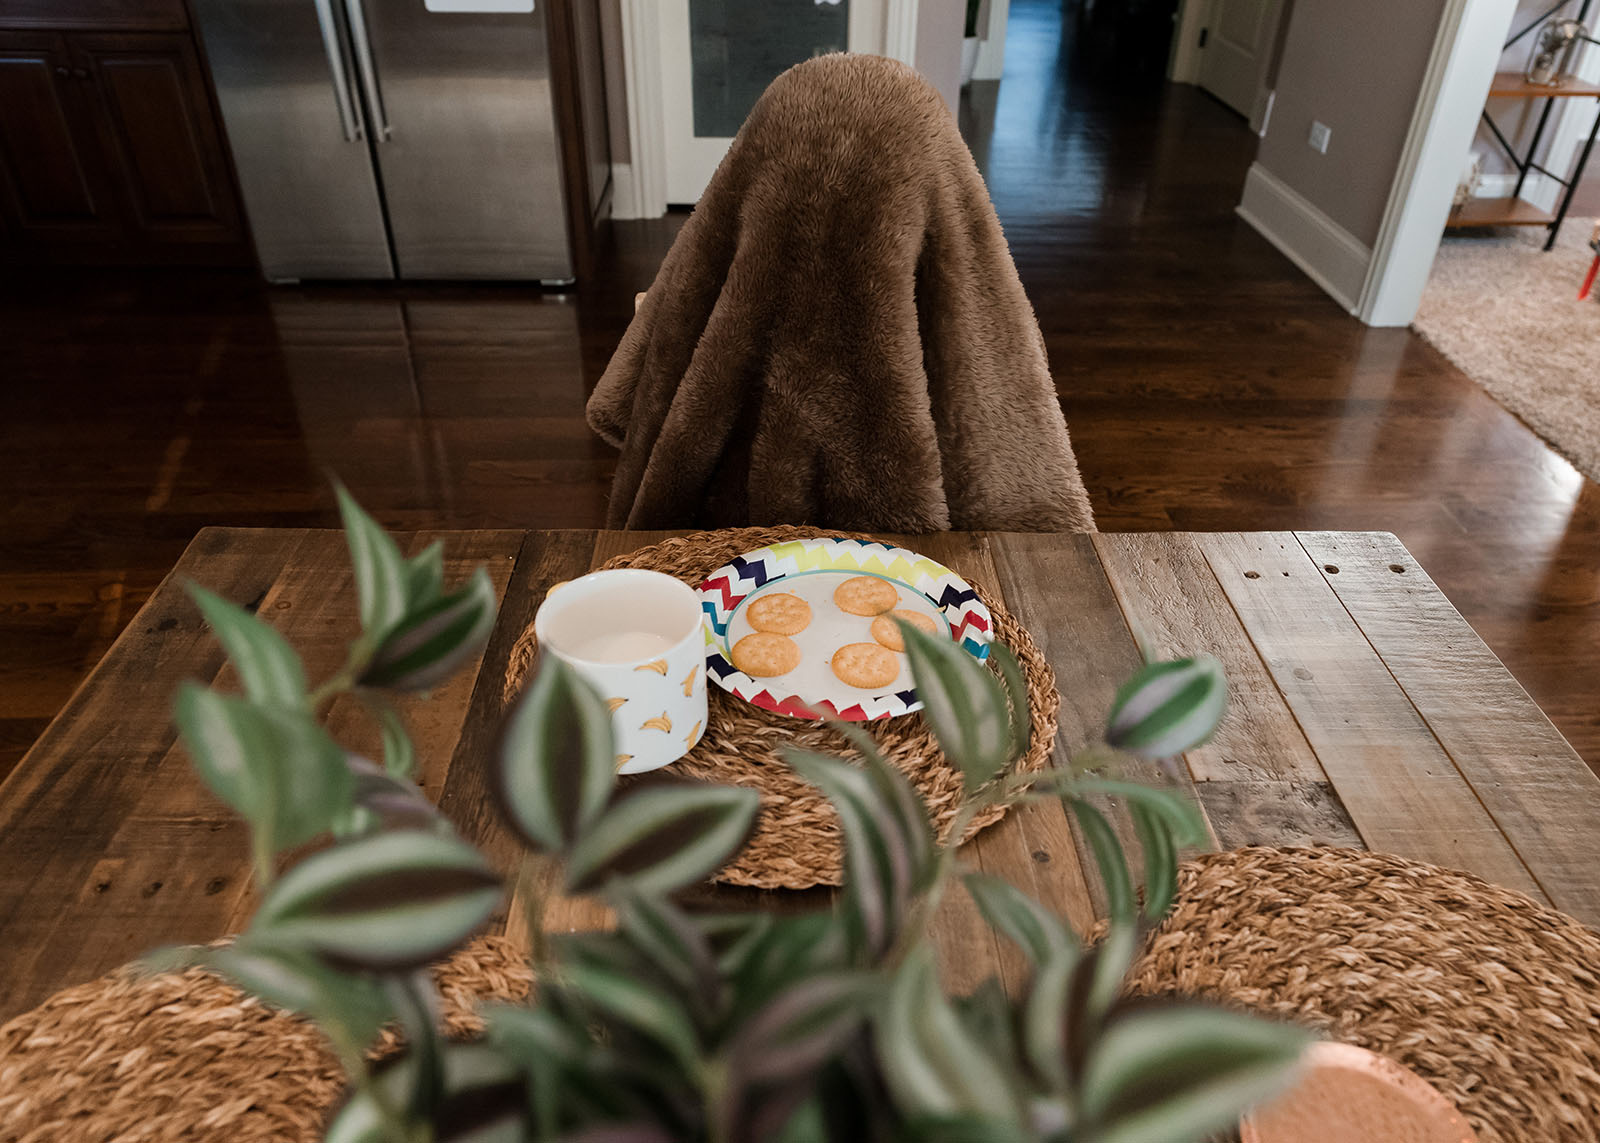 A child sits at the table with a blanket over his head in this funny everyday image.